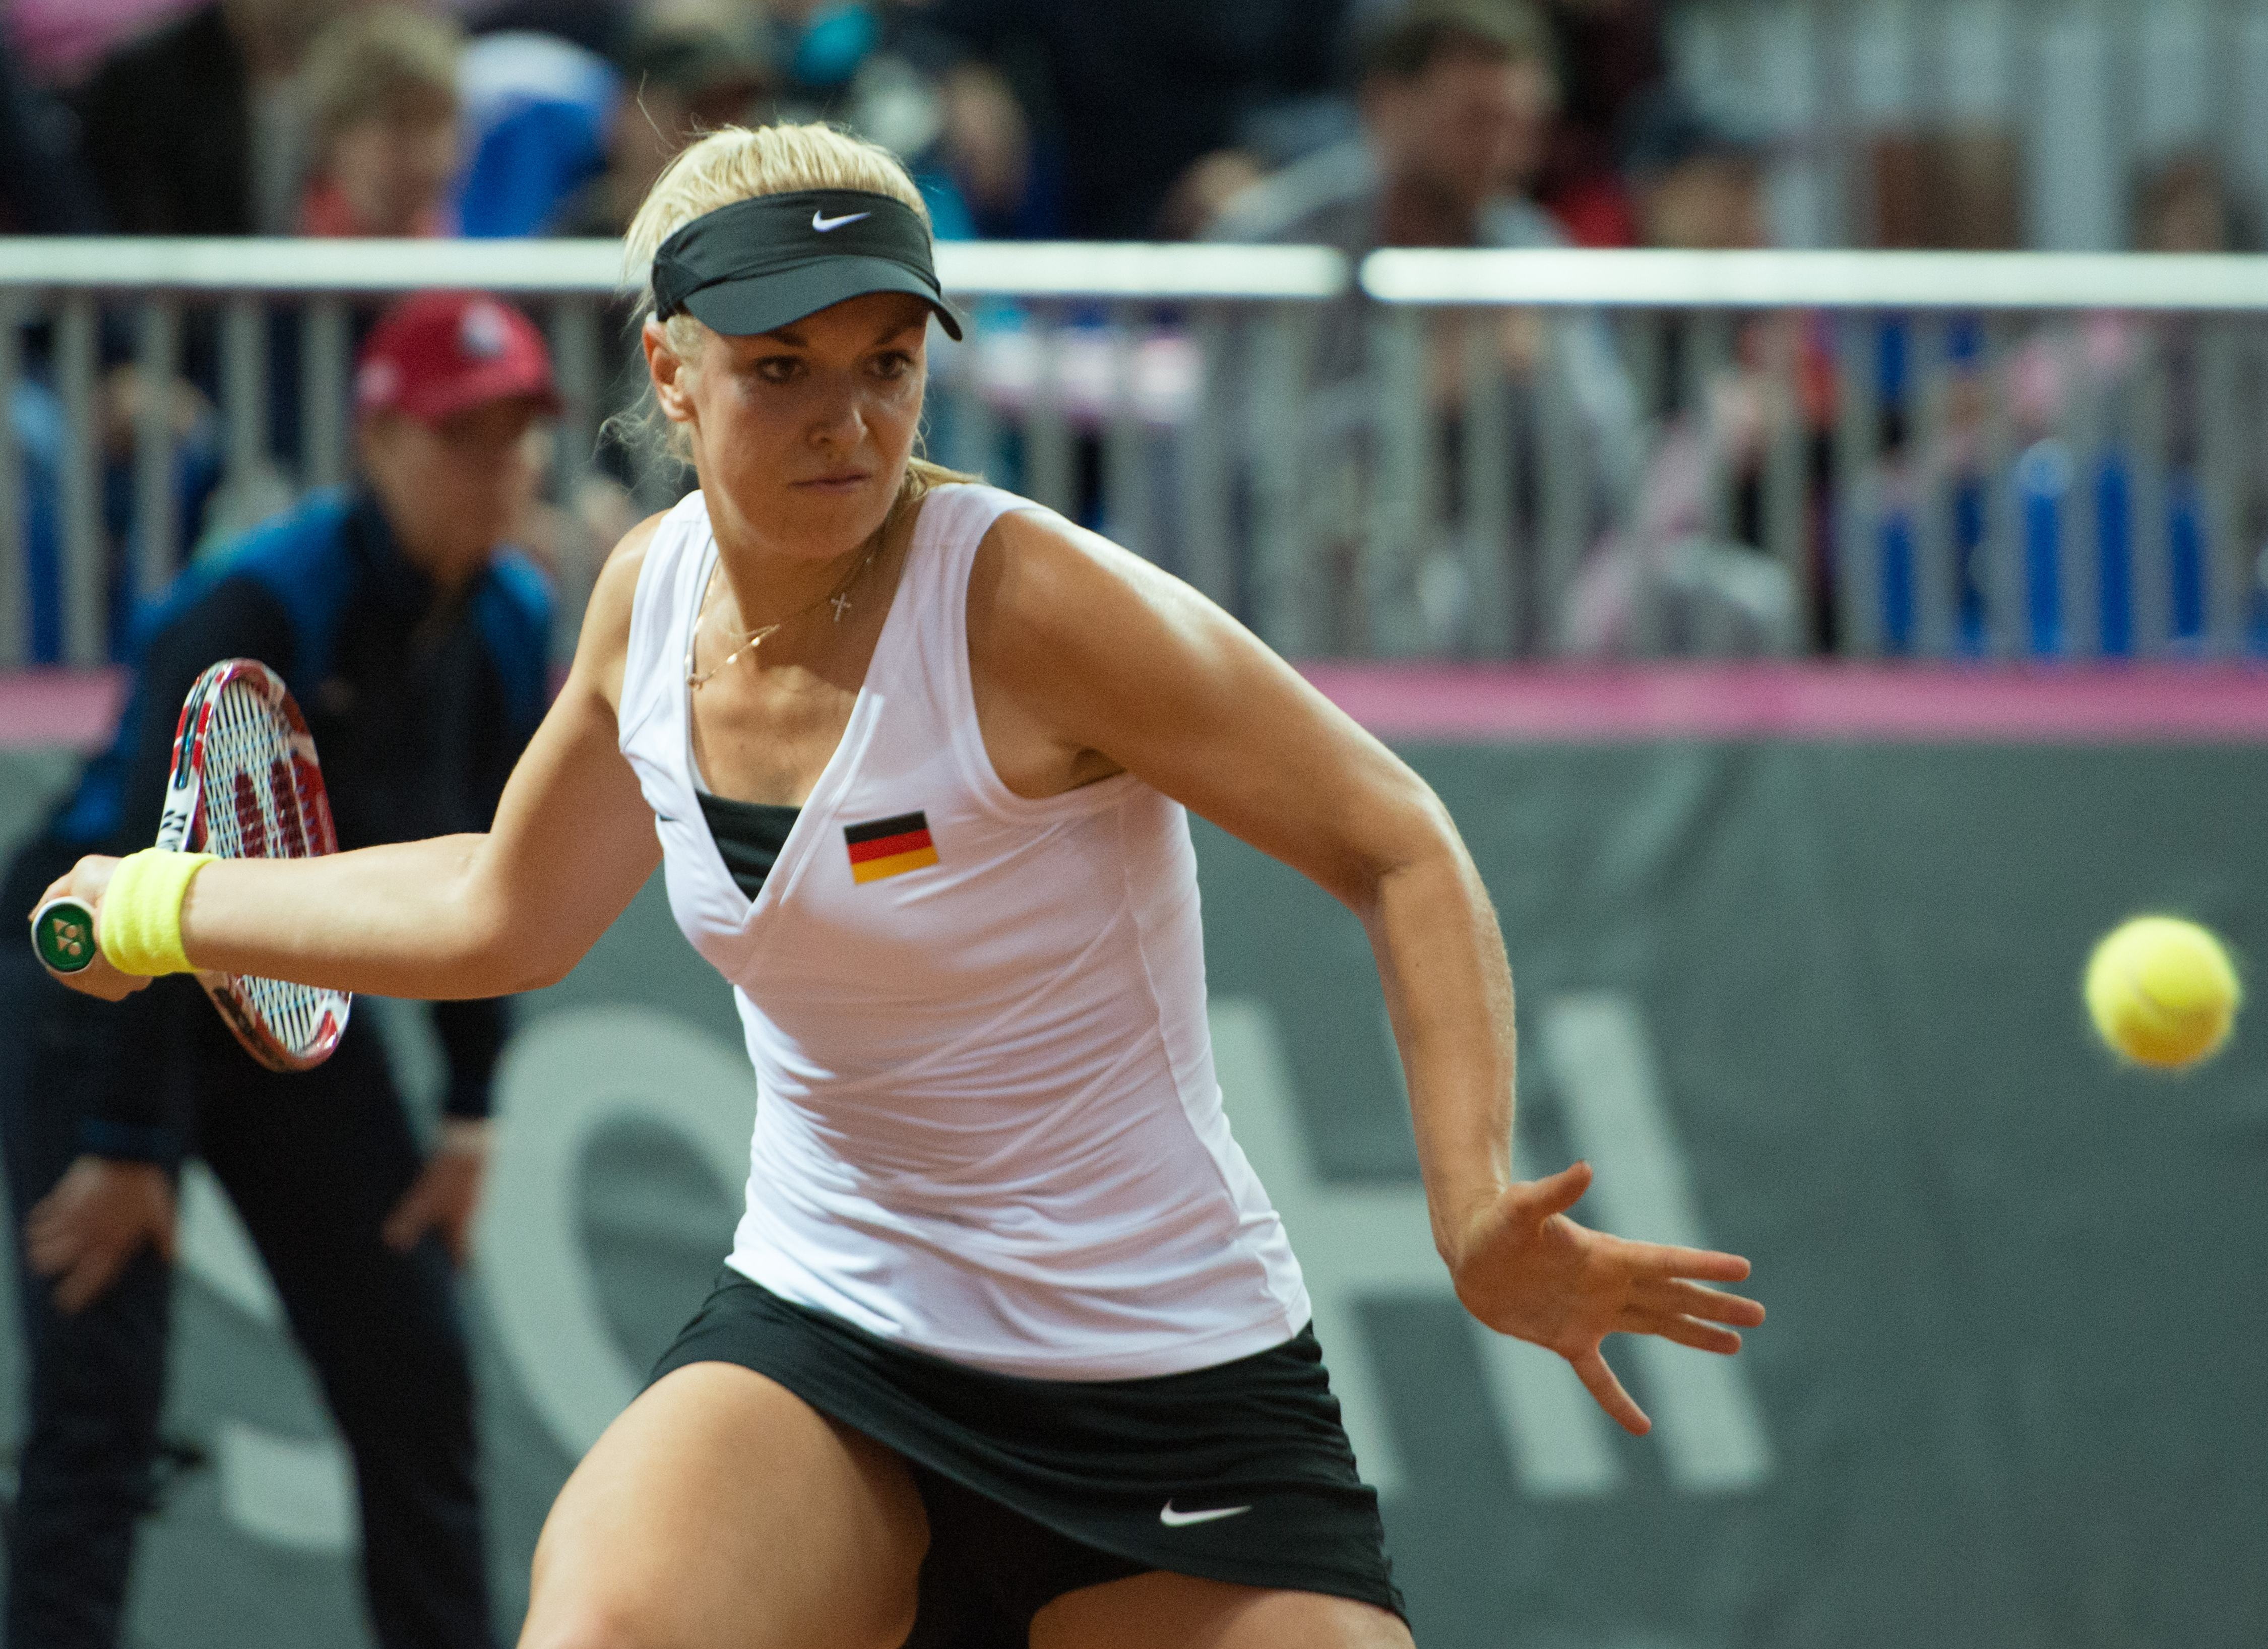 Fed Cup: Russia on brink of final with 2-0 lead over Germany